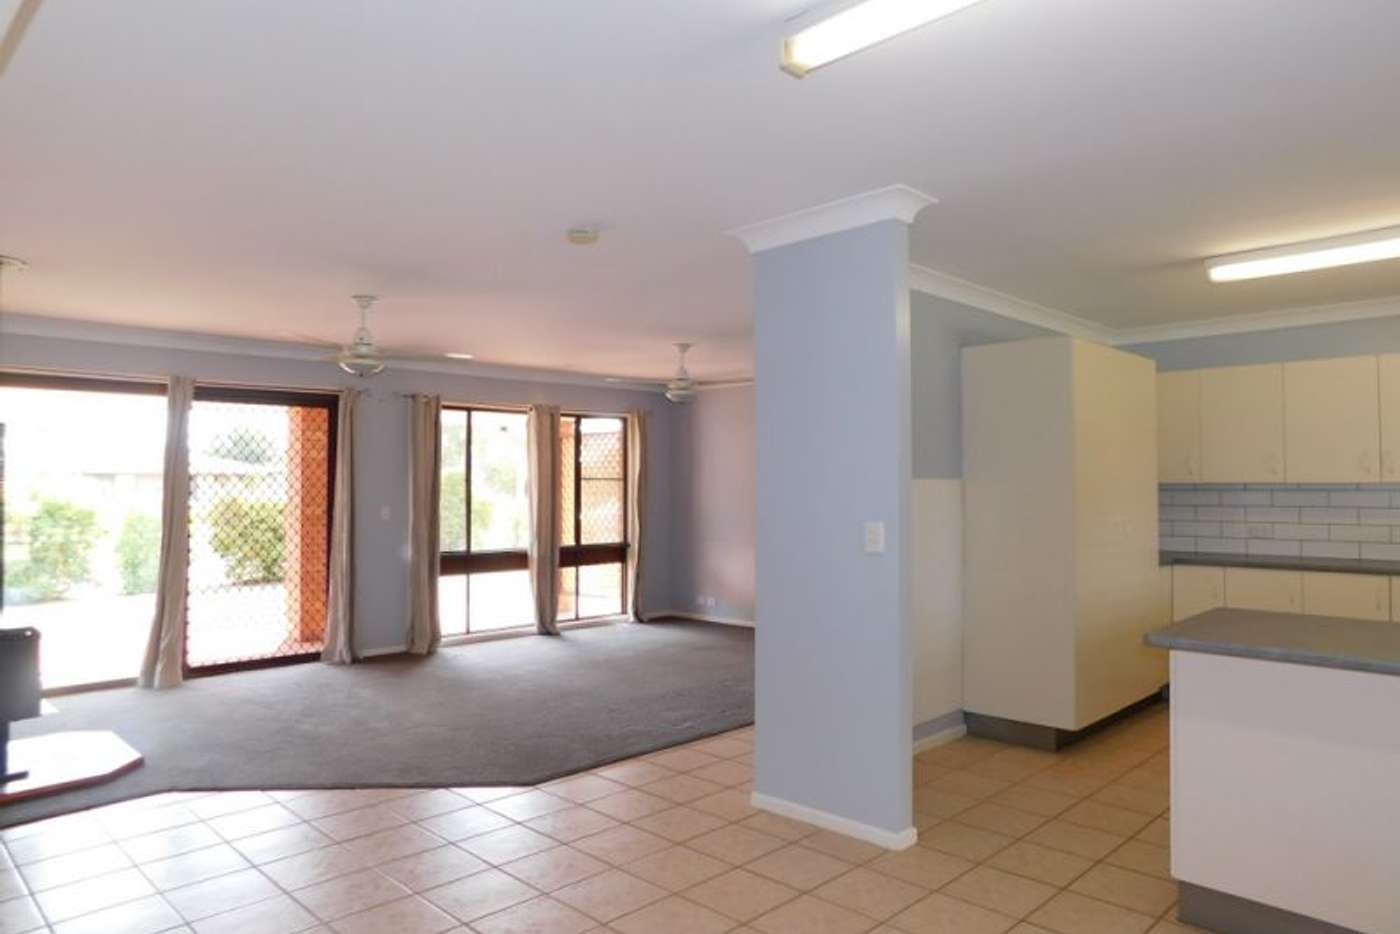 Main view of Homely house listing, 12 Fairway Drive, Nanango QLD 4615